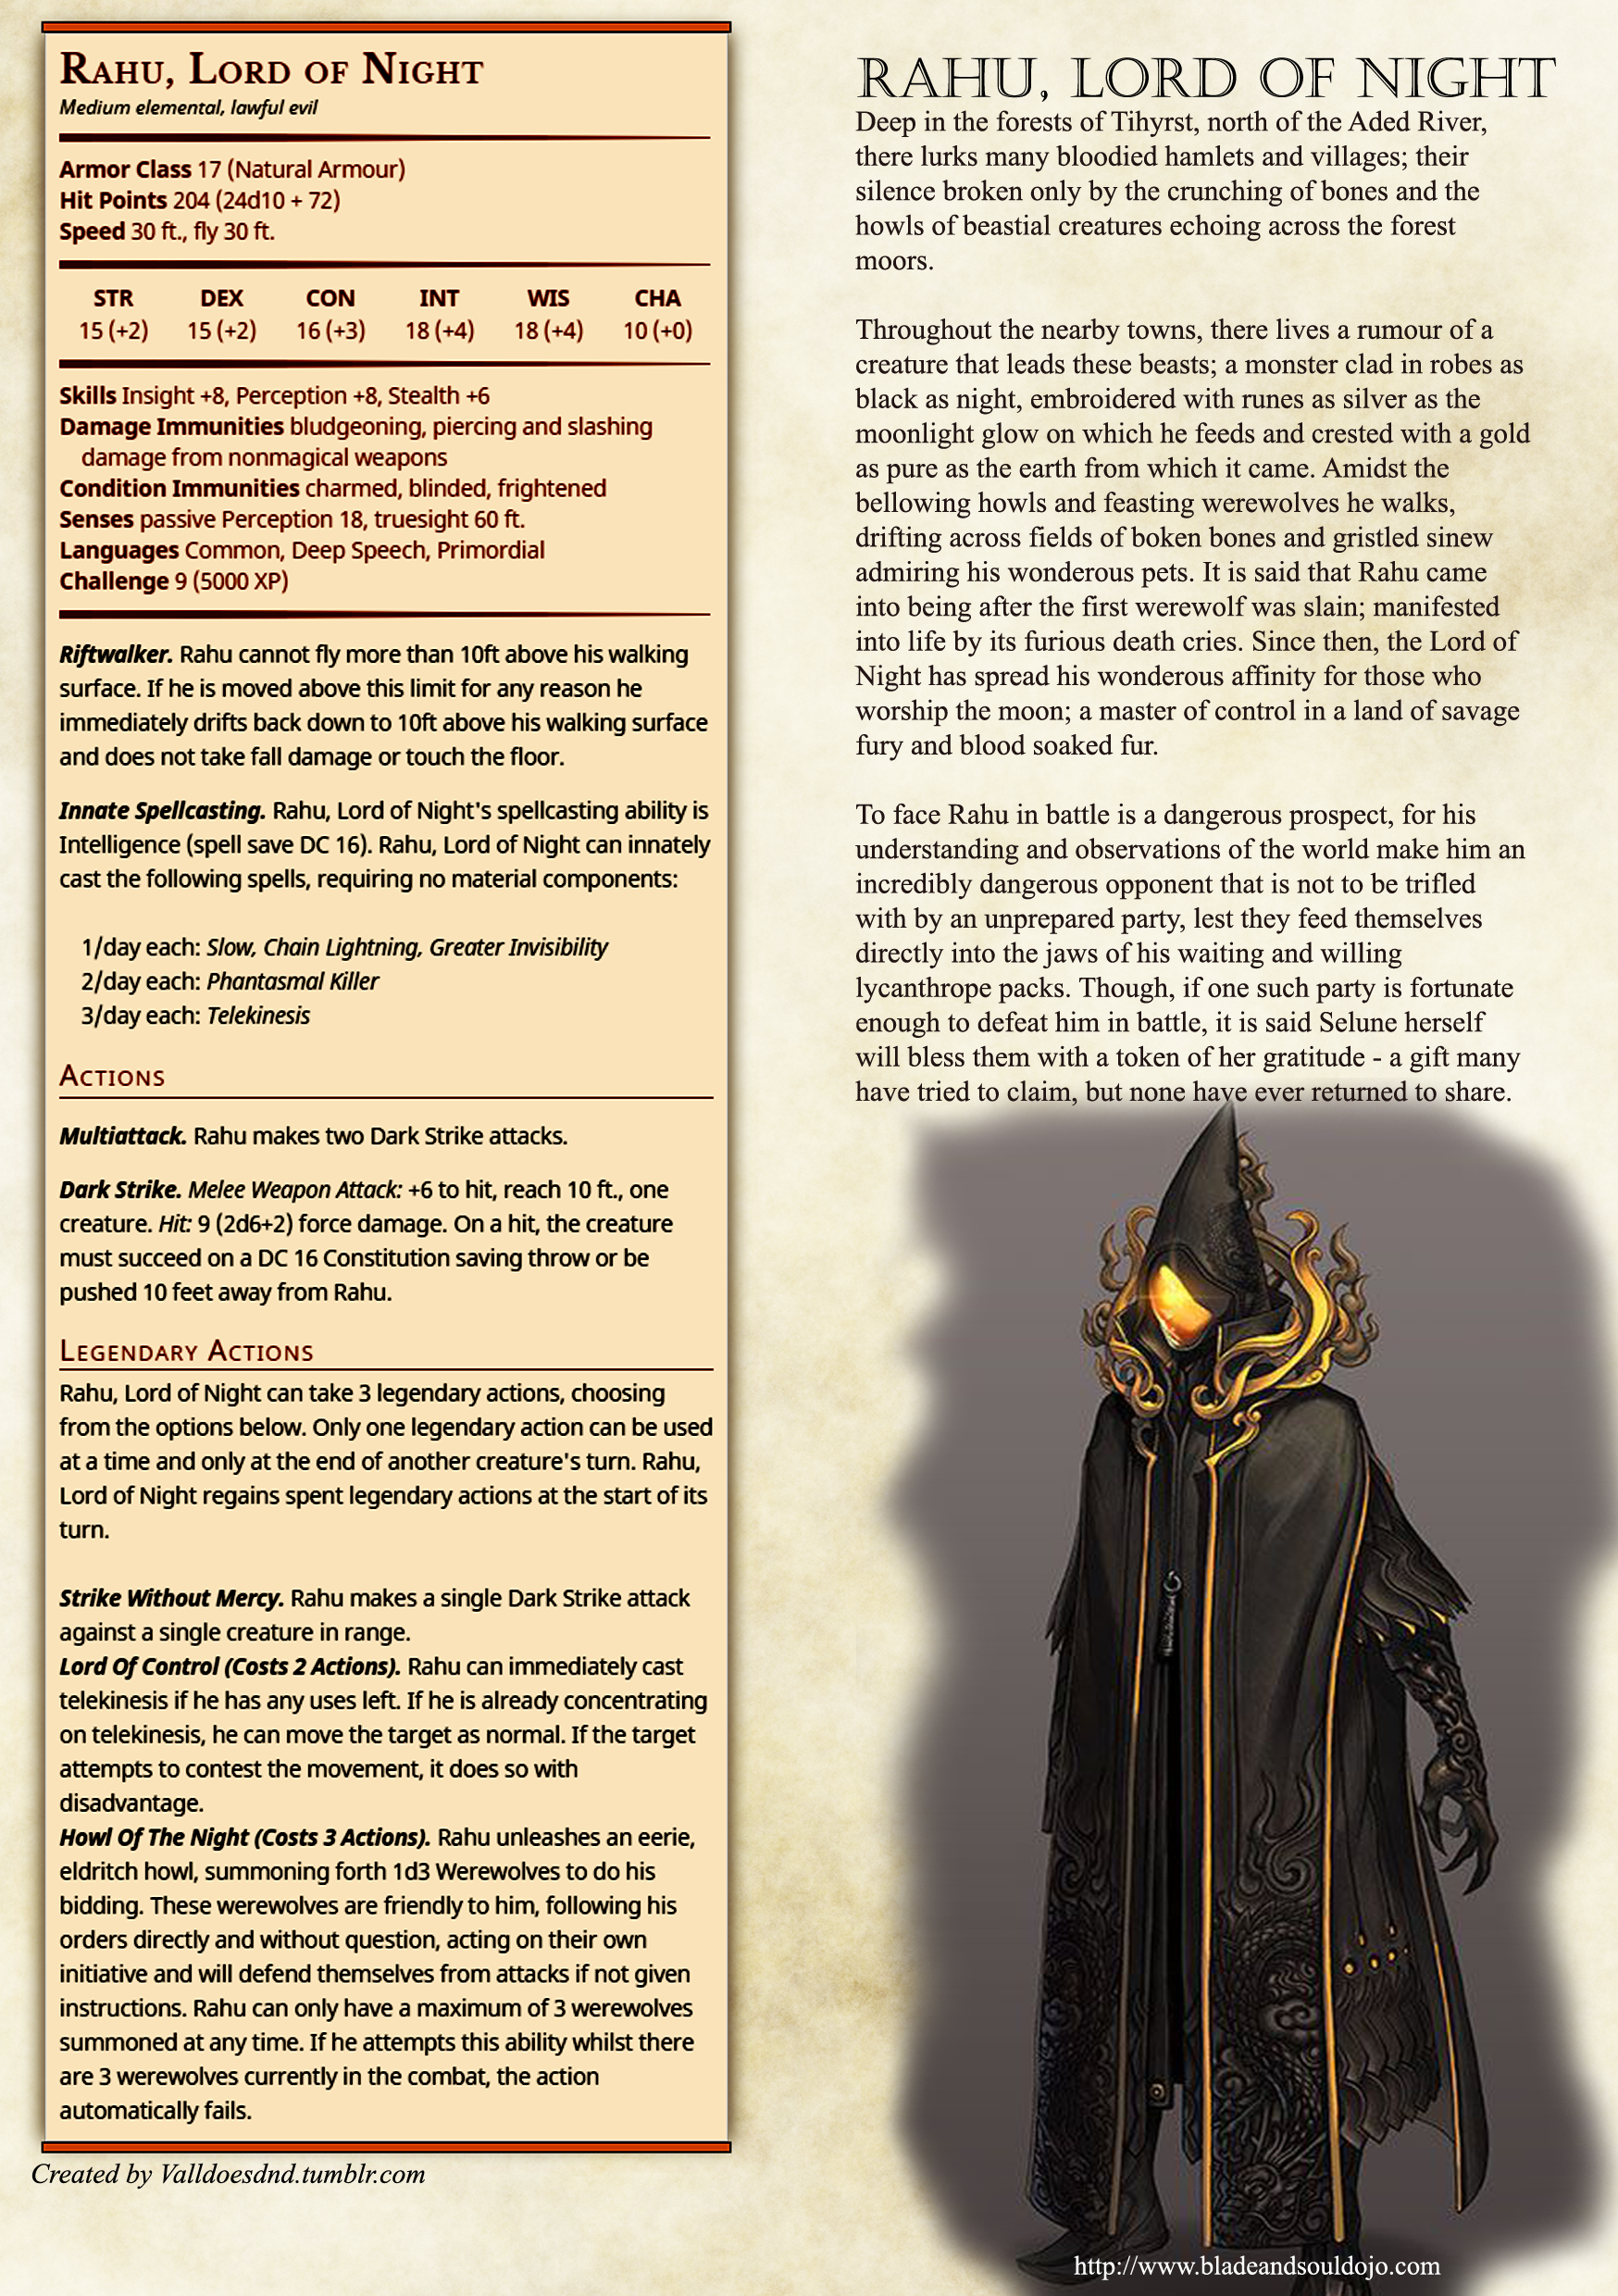 Rahu, Lord of Night Homebrew for D&D 5e | D&D in 2019 | Dnd